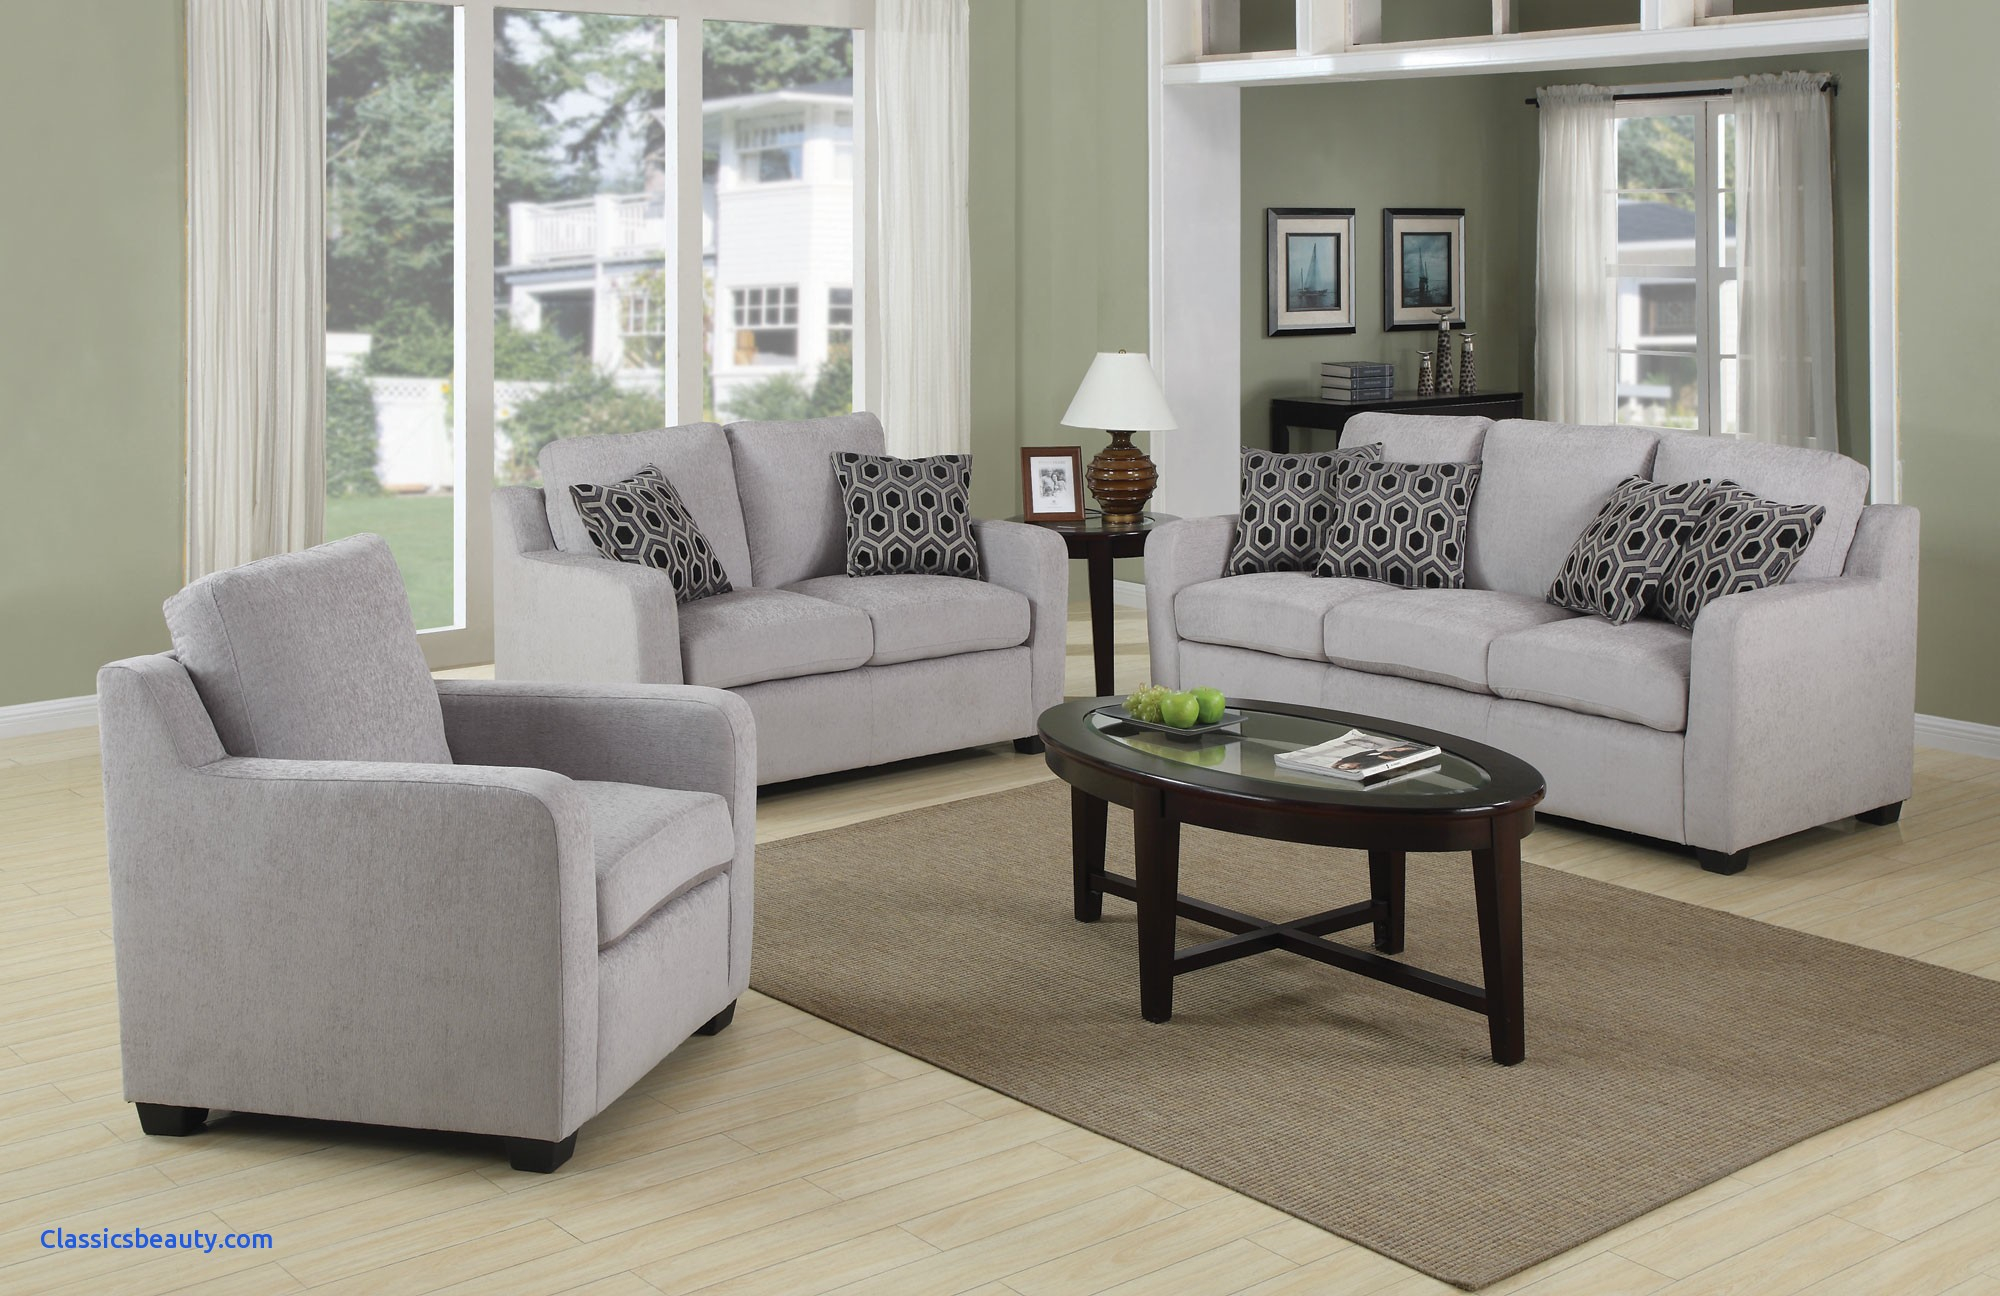 Small Living Room Arrangements Spaces Couches Furnishing A Sofa For within Small Living Room Sets